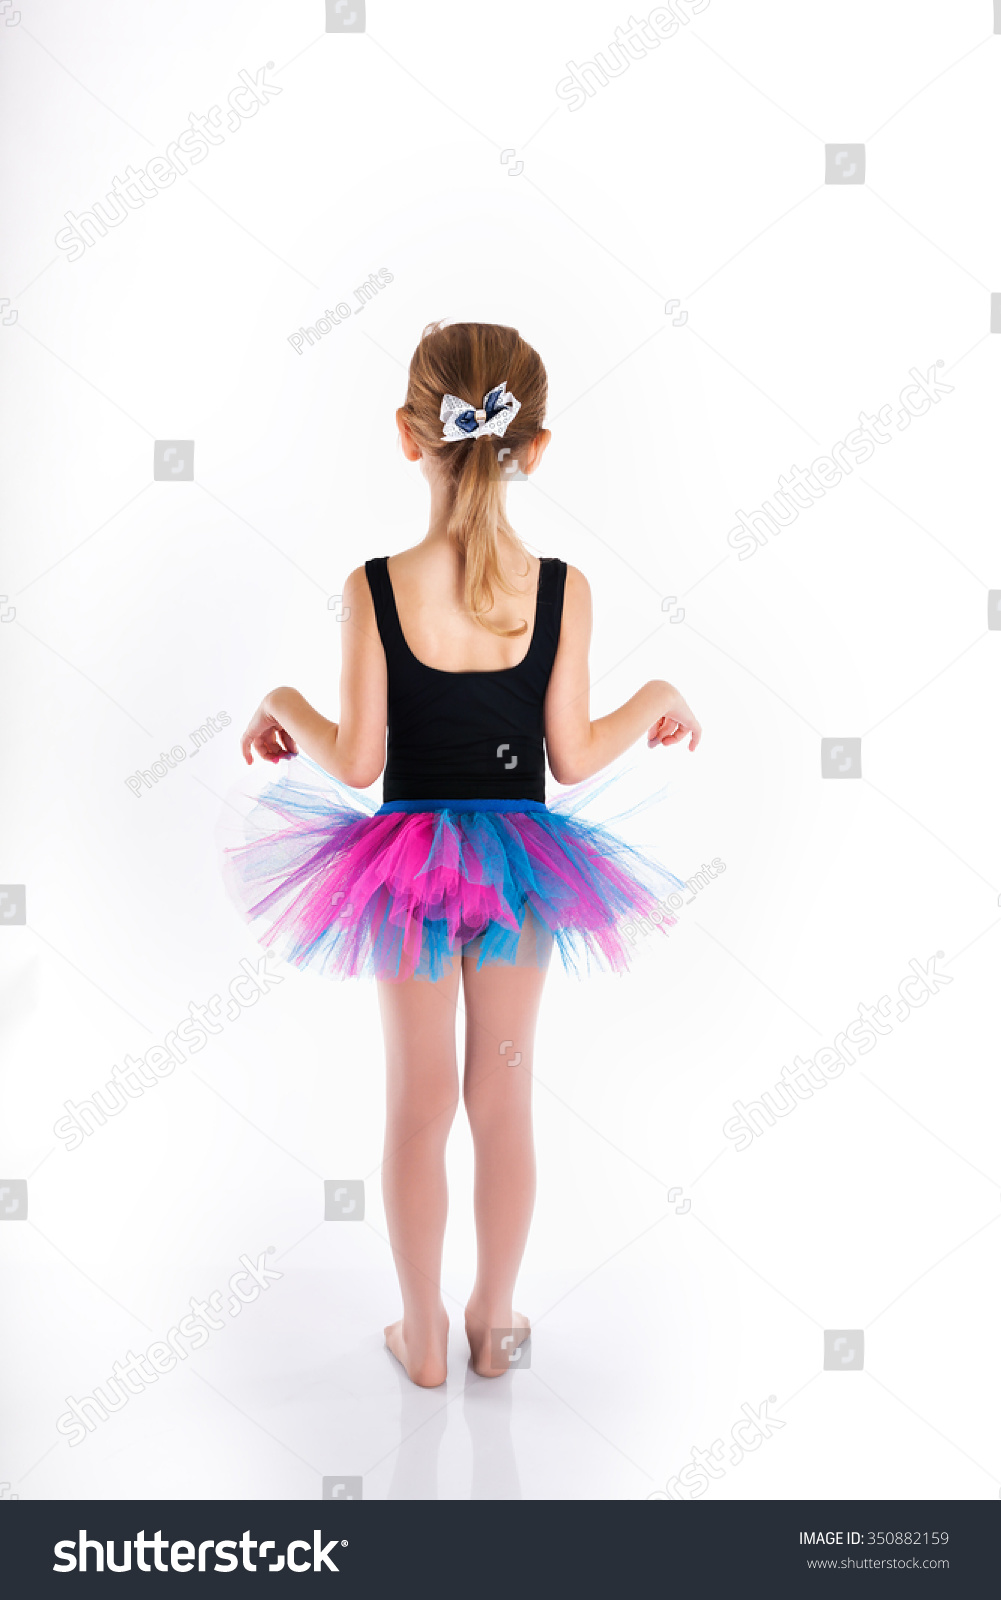 Funny Little Girl Studying Dance. Sport Swimsuit. Purple ...